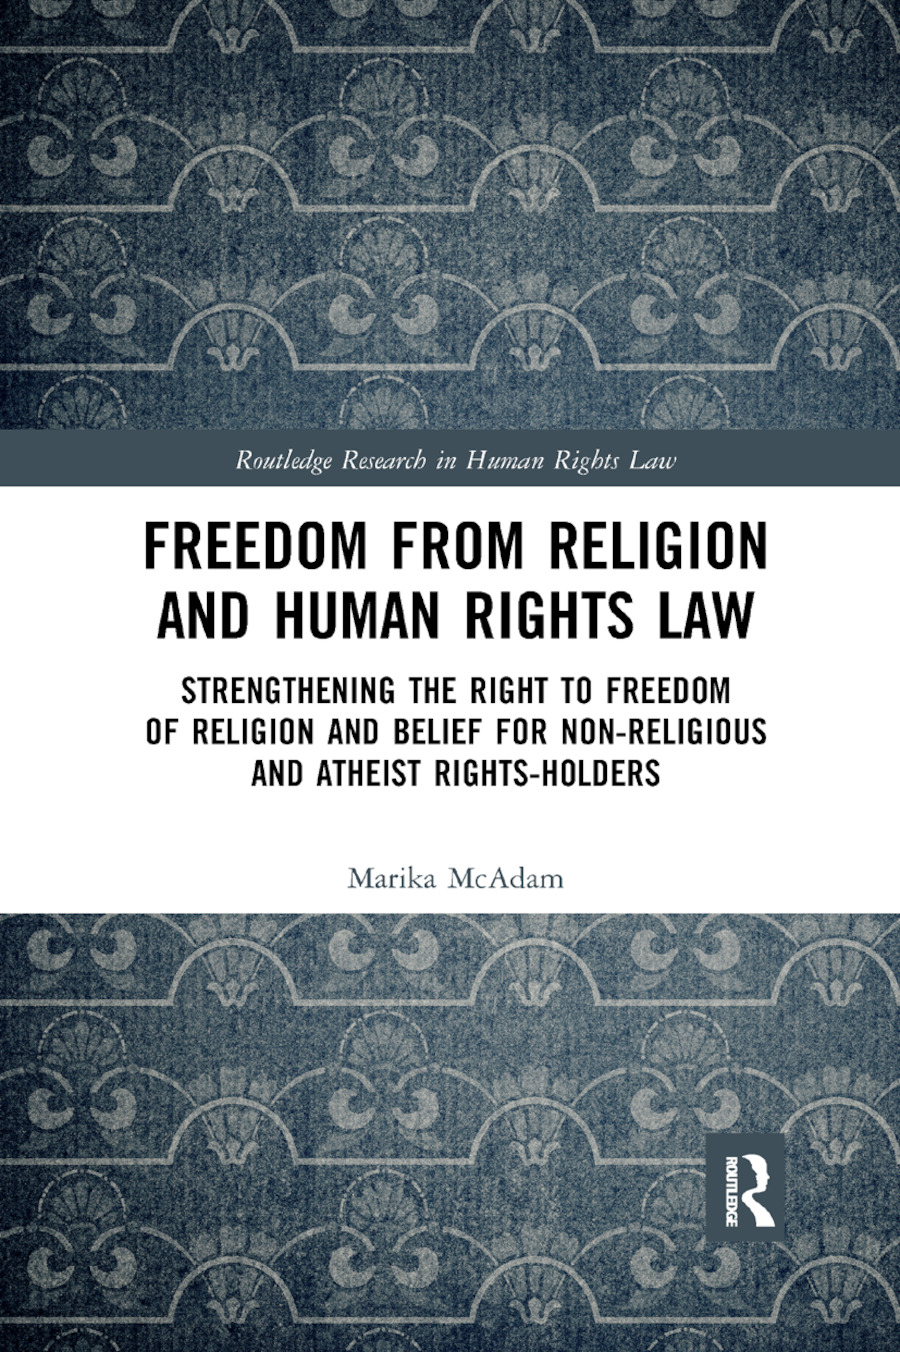 Freedom from Religion and Human Rights Law: Strengthening the Right to Freedom of Religion and Belief for Non-Religious and Atheist Rights-Holders book cover